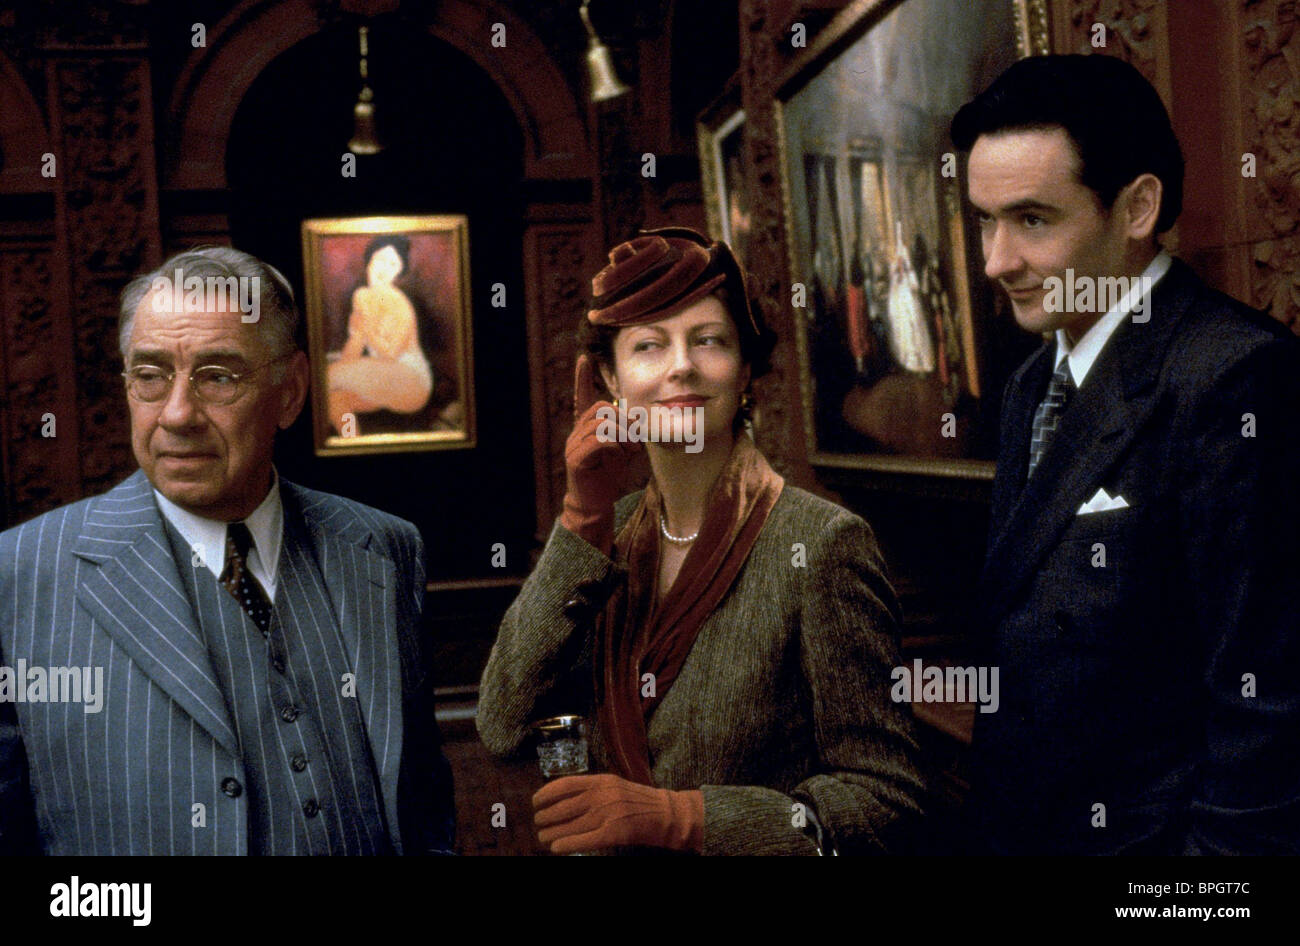 PHILIP BAKER HALL, SUSAN SARANDON, JOHN CUSACK, CRADLE WILL ROCK, 1999 - Stock Image